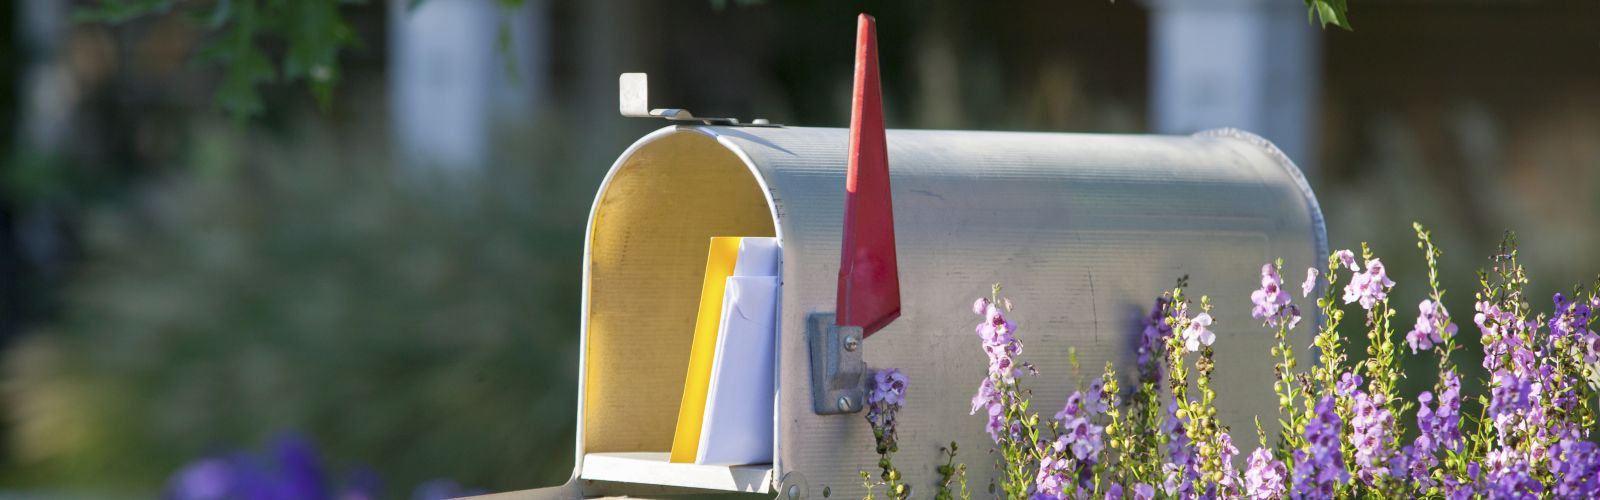 Mailbox with blooming purple flowers and maple tree branches